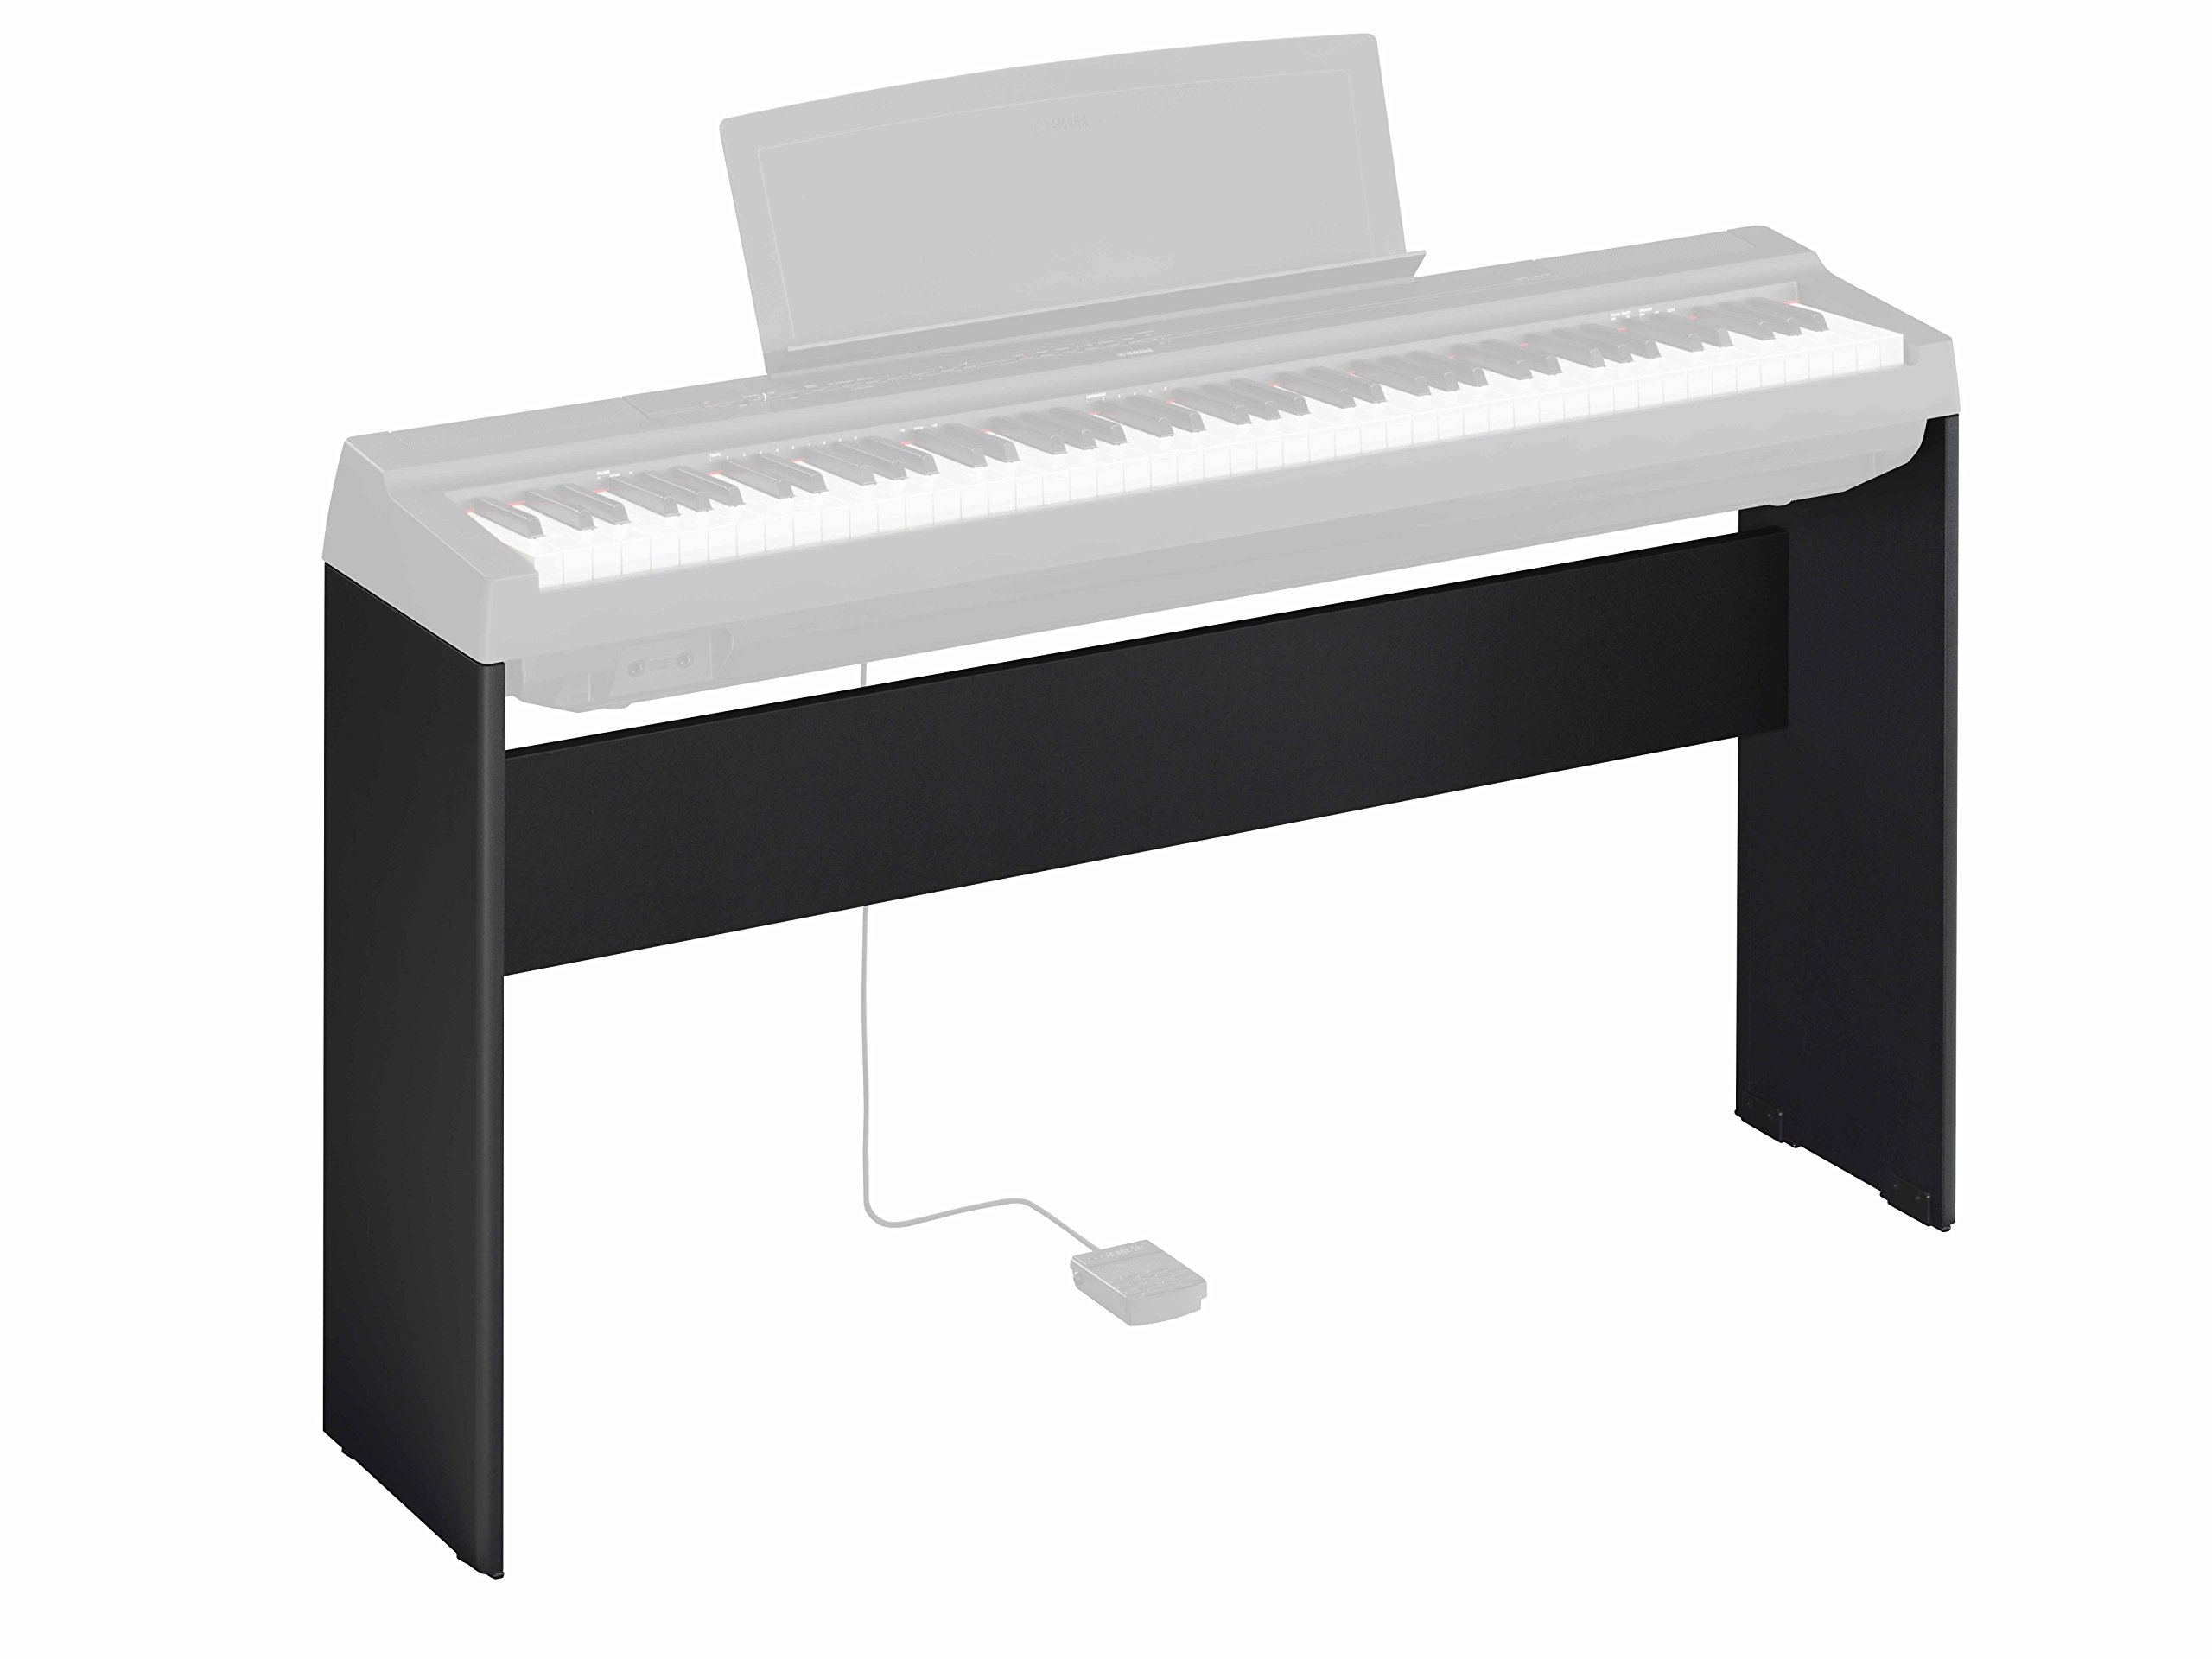 Yamaha P-125 Digital Piano - Black Bundle with Yamaha L-125 Stand, LP-1 Pedal, Furniture Bench, Dust Cover, Instructional Book, Online Lessons, Austin Bazaar Instructional DVD, and Polishing Cloth by Yamaha (Image #5)